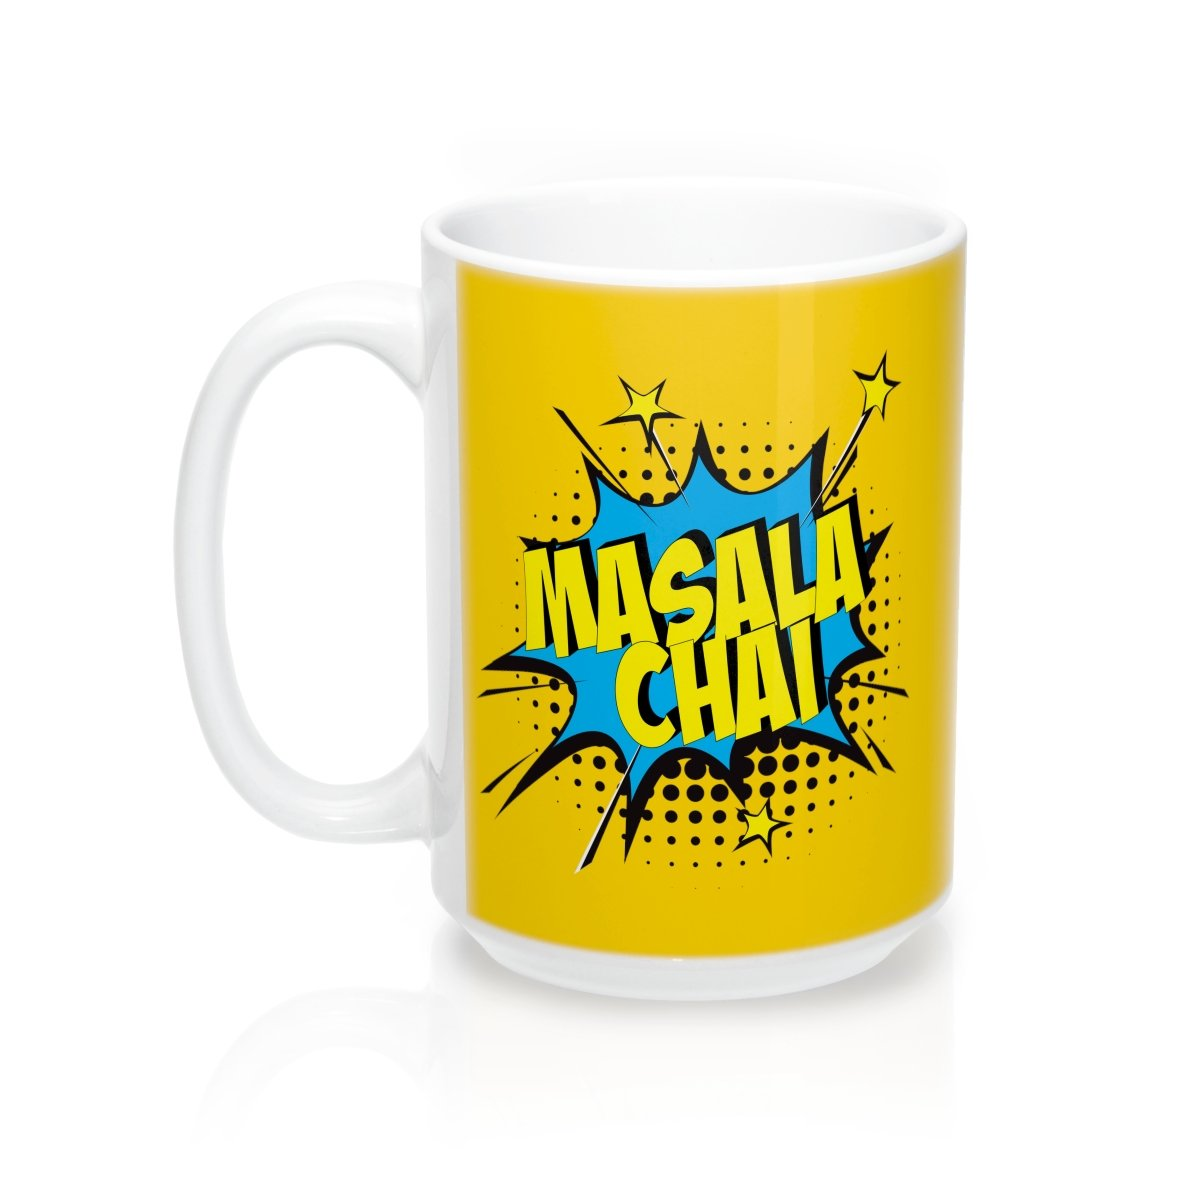 Yellow Masala Chai Mug 15oz